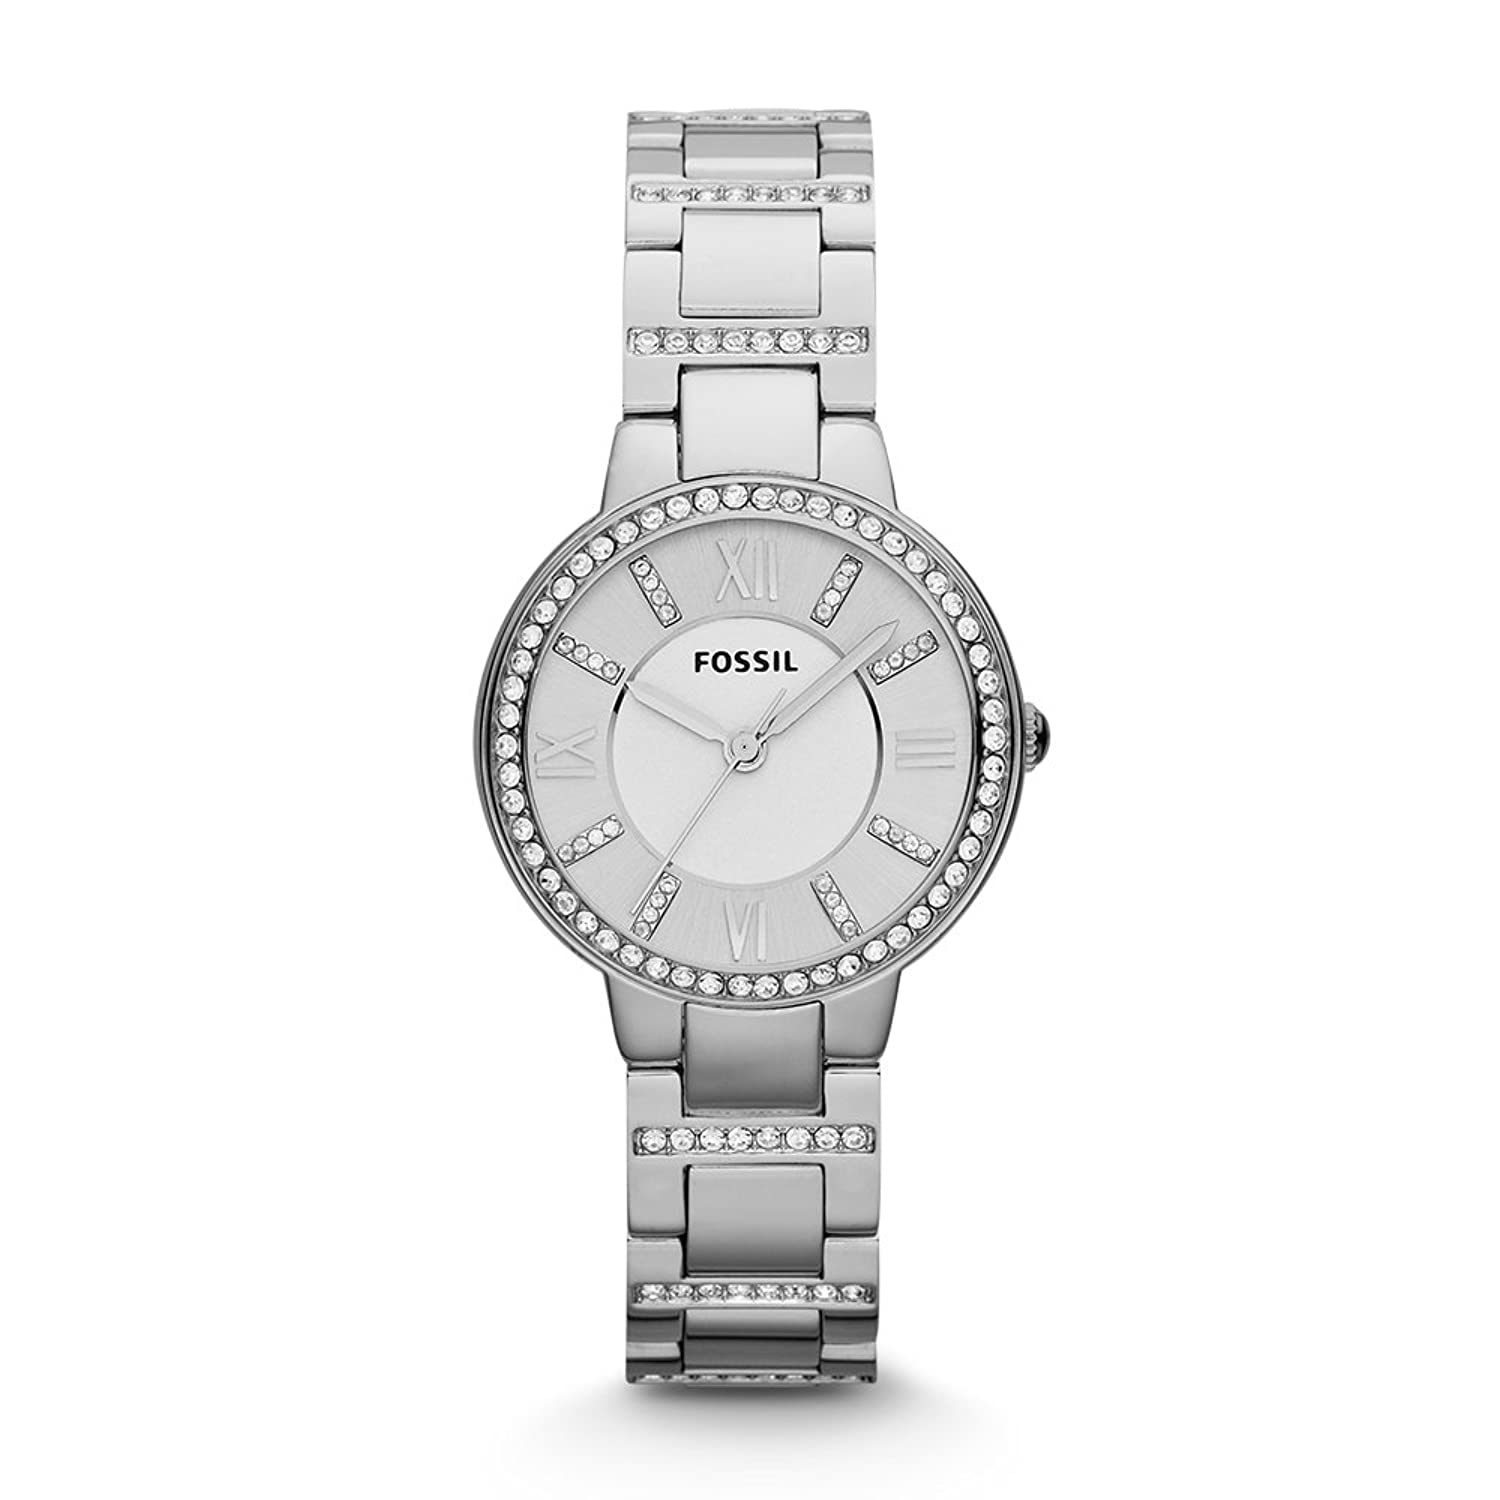 Fossil watches amazon fossil virginia stainless steel watch silver analogue womens quartz wrist watch with clear crystal applications gumiabroncs Gallery